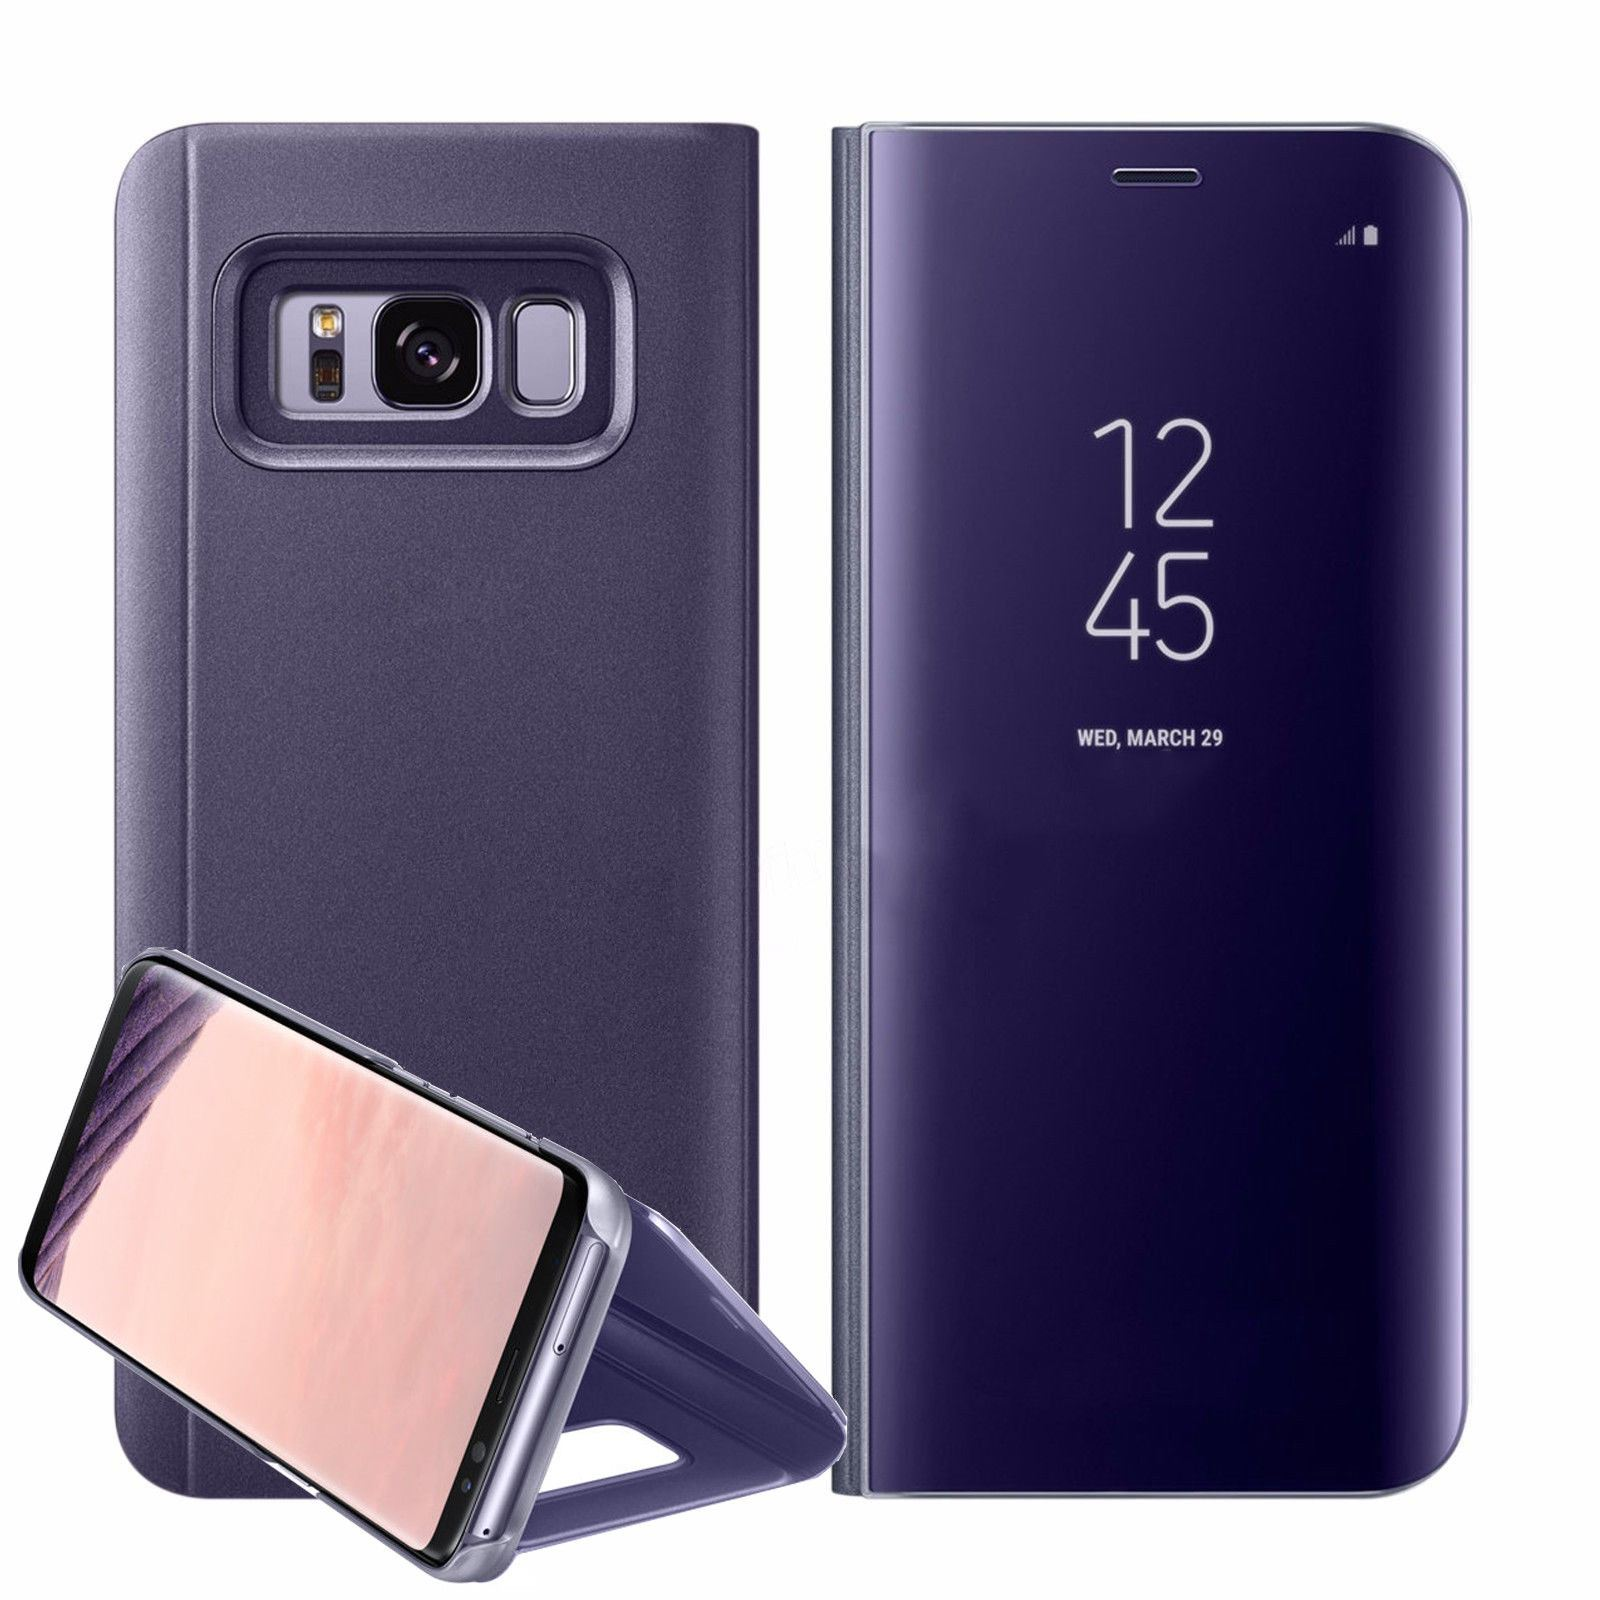 New-Samsung-Galaxy-S8-S9-S10-Smart-View-Mirror-Leather-Flip-Stand-Case-Cover miniatuur 30